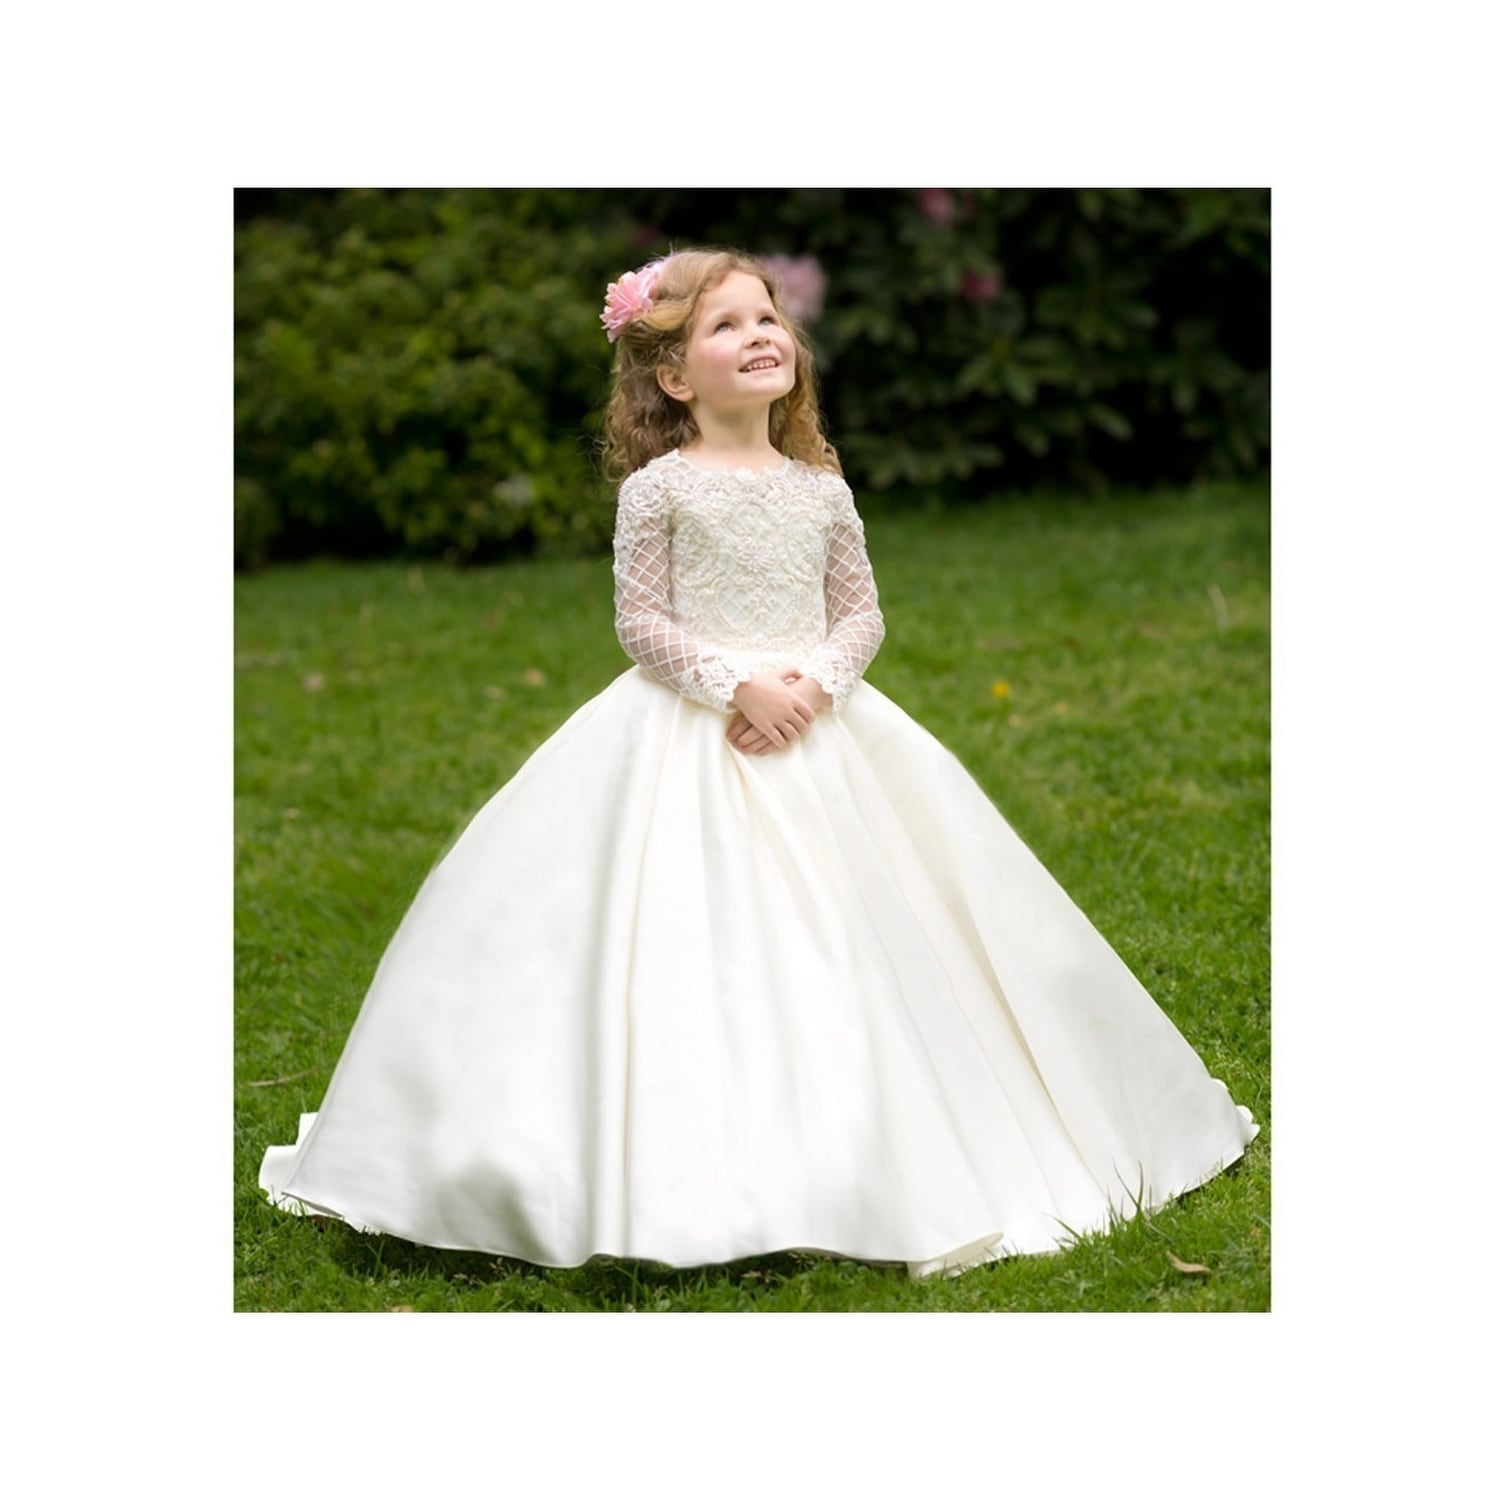 f83f4b1b862 Shop Girls Ivory White Pearl Adorned Helena Flower Girl Dress 7-10 - Free  Shipping Today - Overstock - 21804637